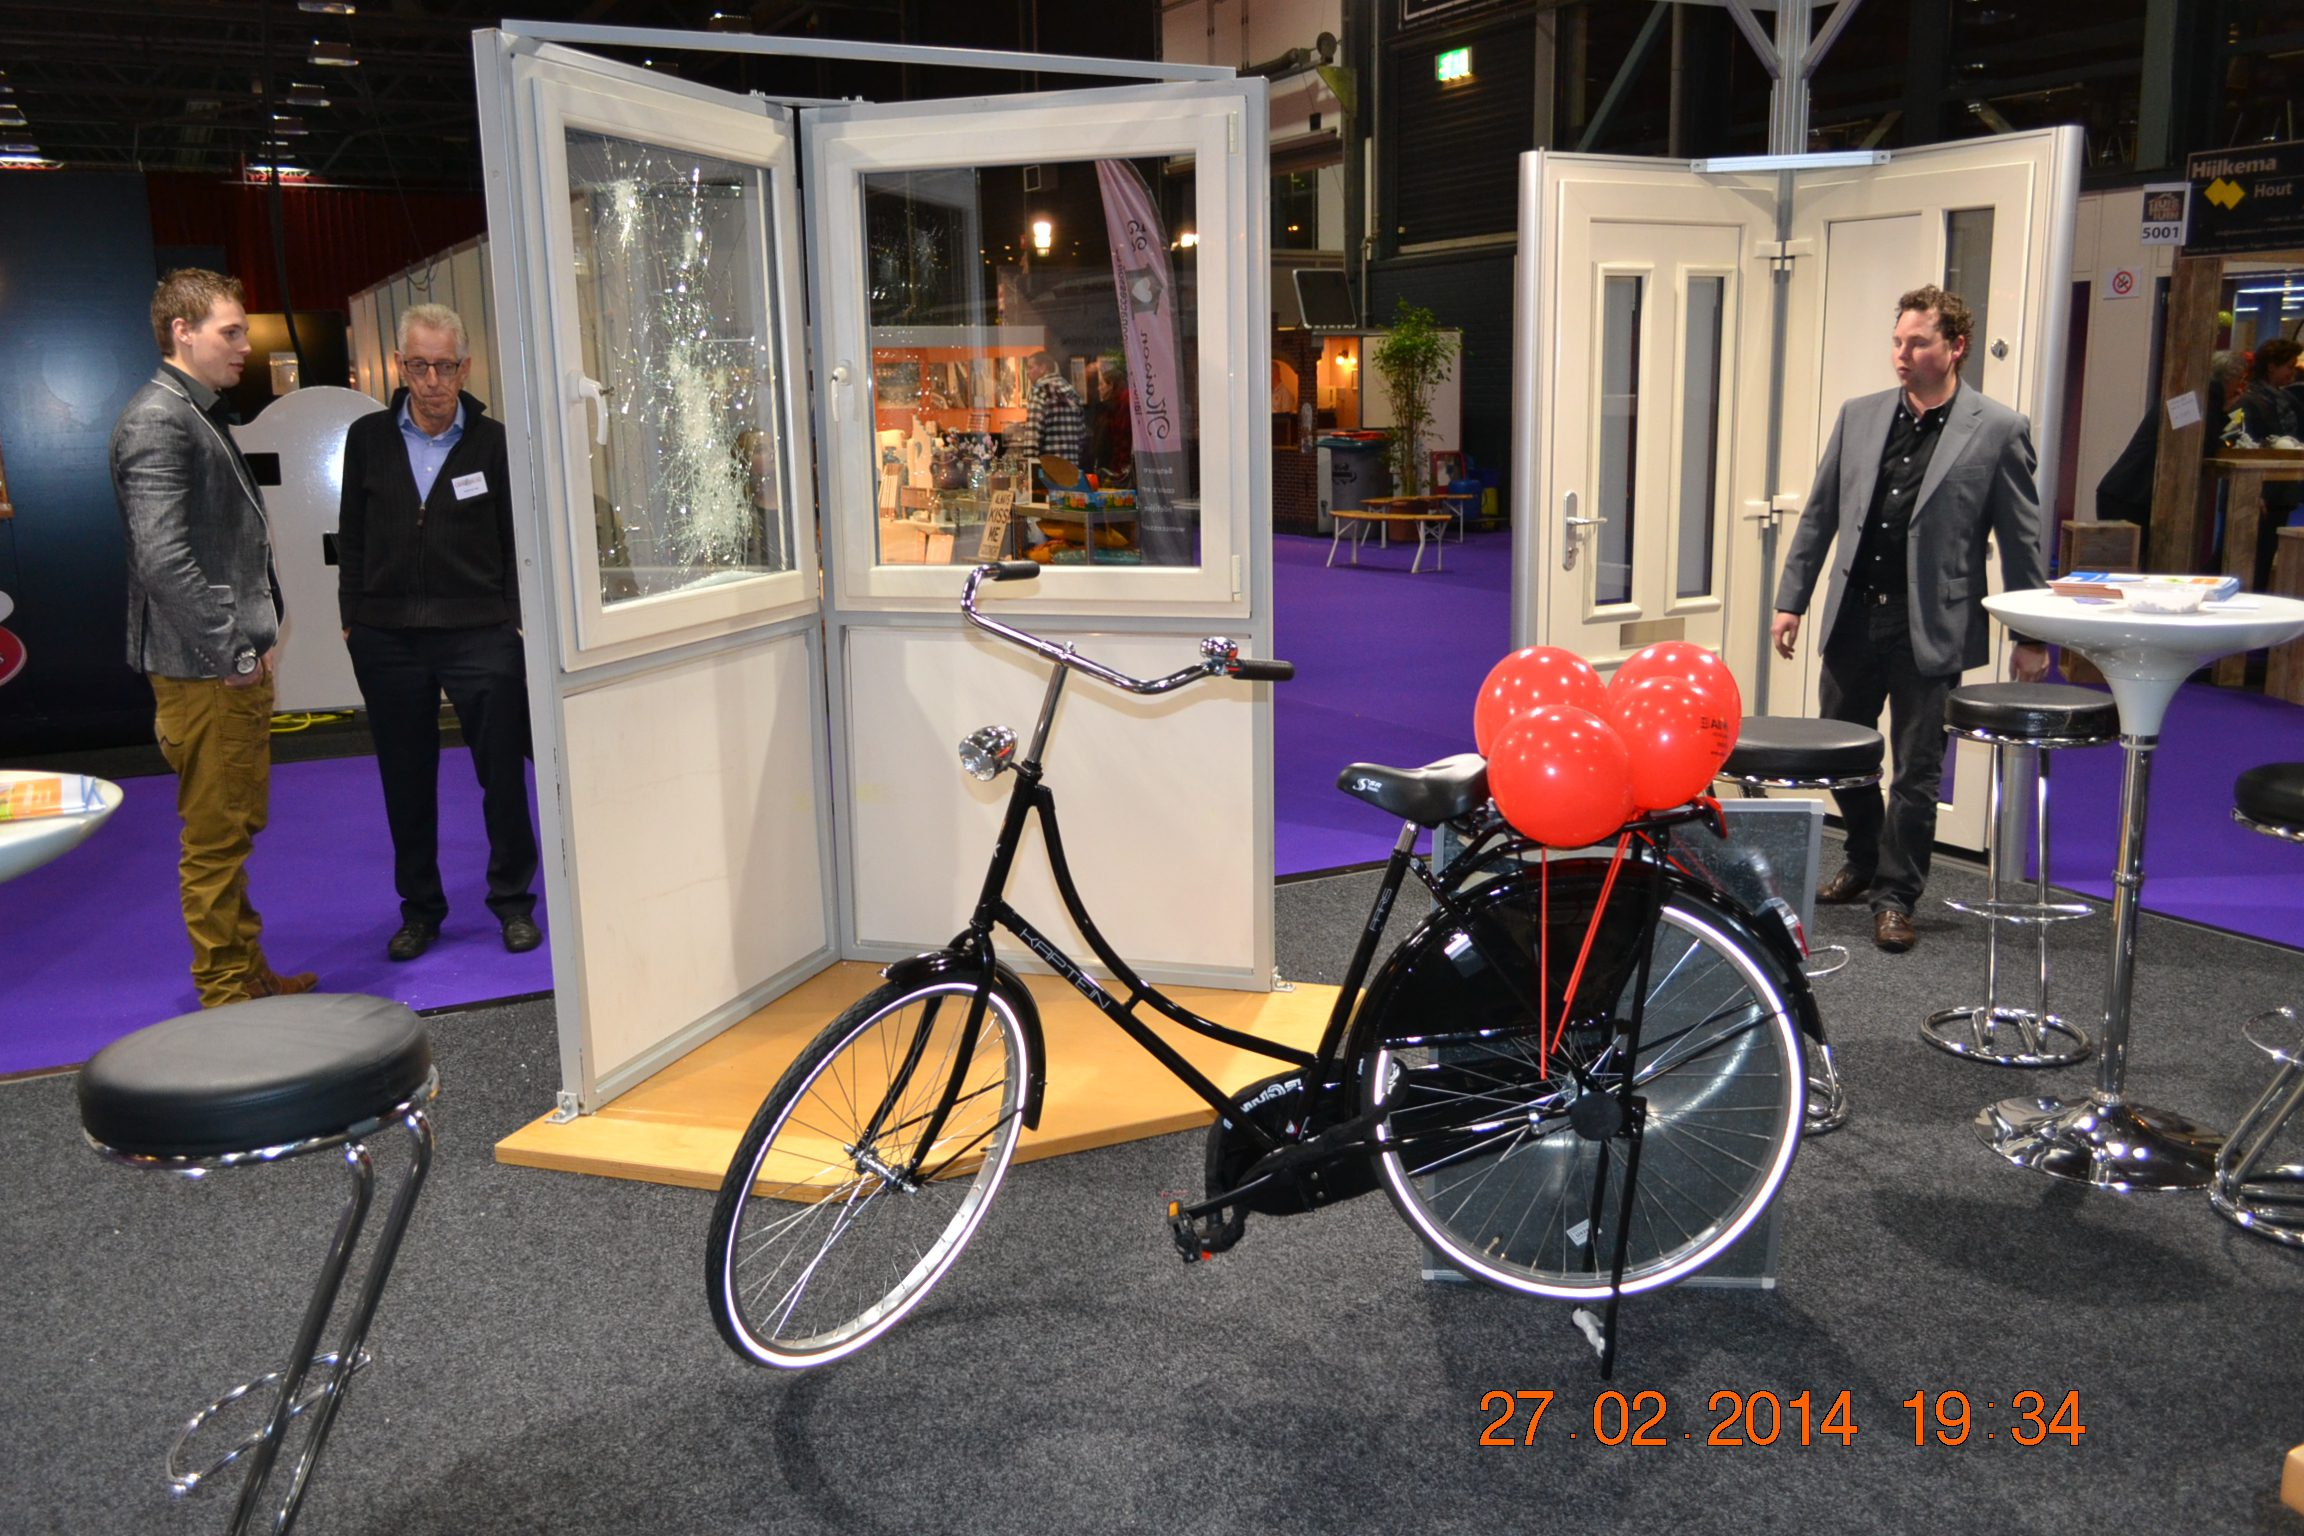 huis en tuin fiets verloting all window